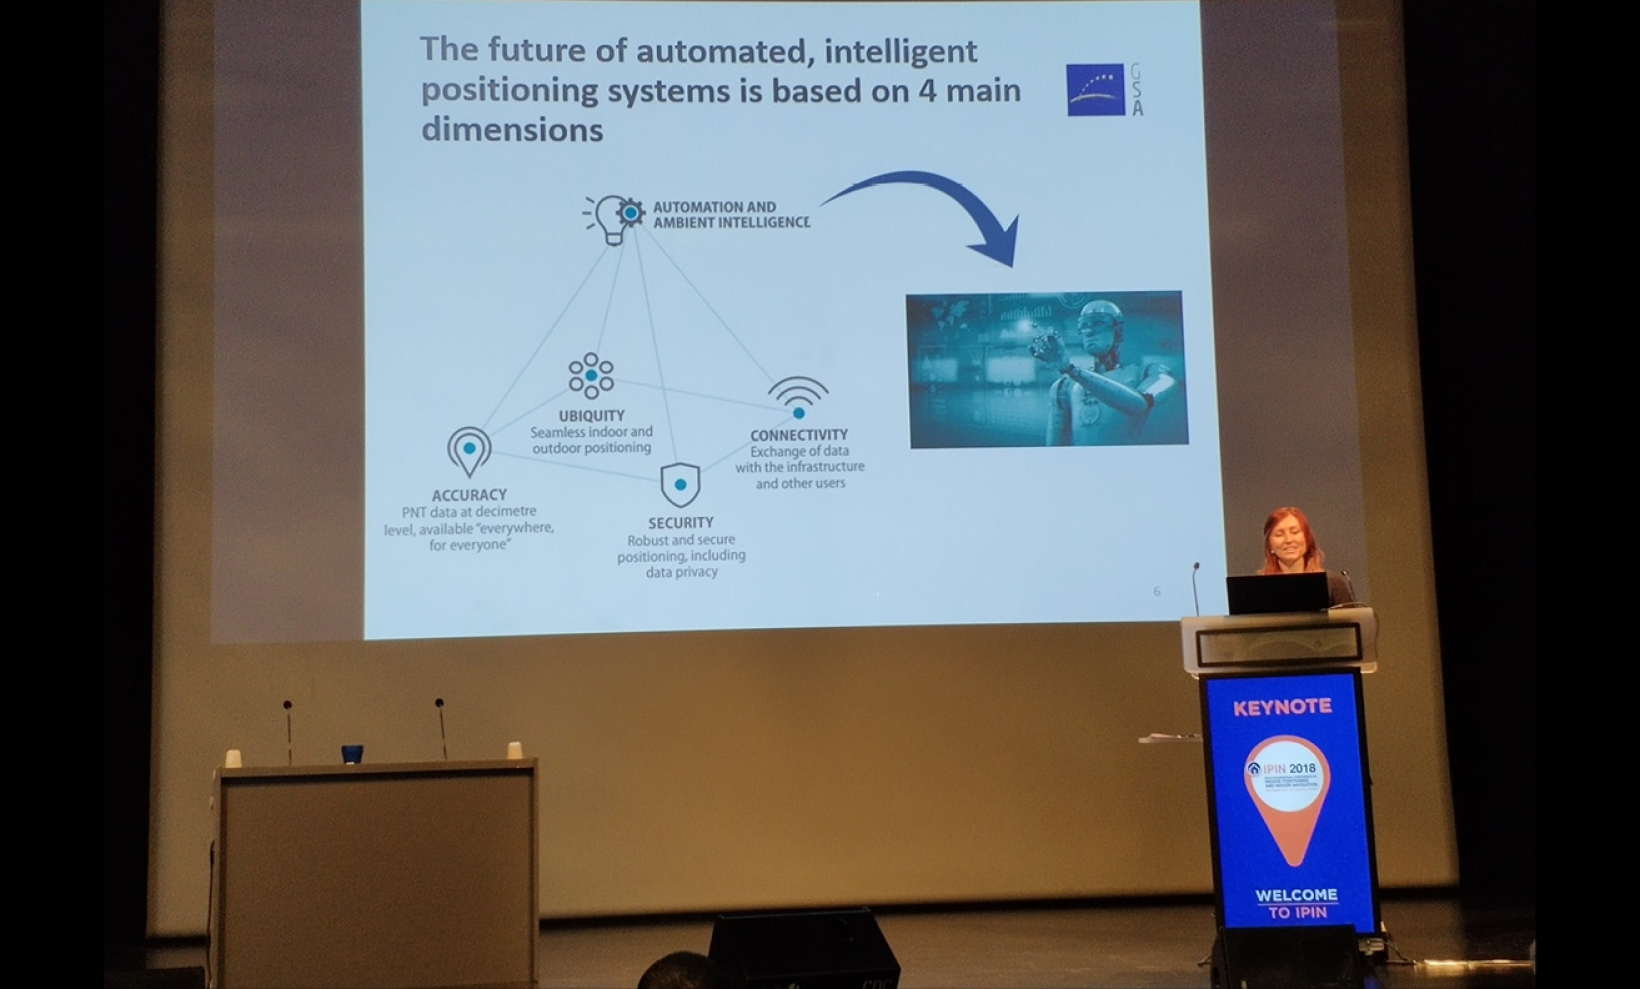 The GSA's Justyna Redelkiewicz delivering a keynote address at the IPIN 2018 indoor positioning and navigation conference